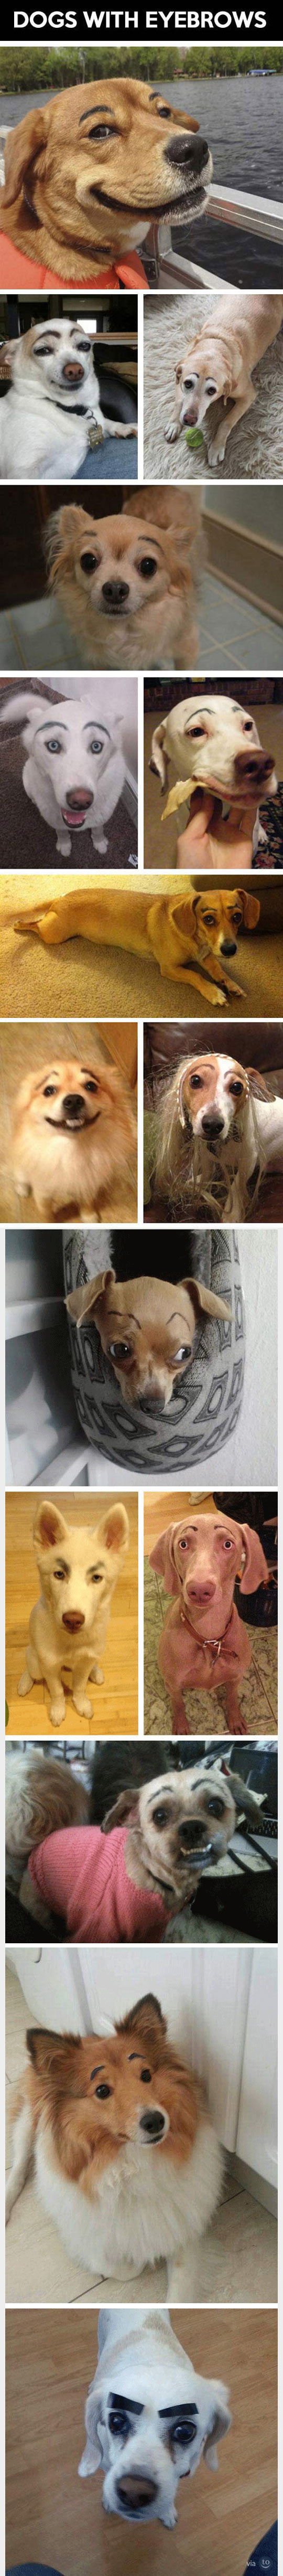 If Dogs Had Eyebrows